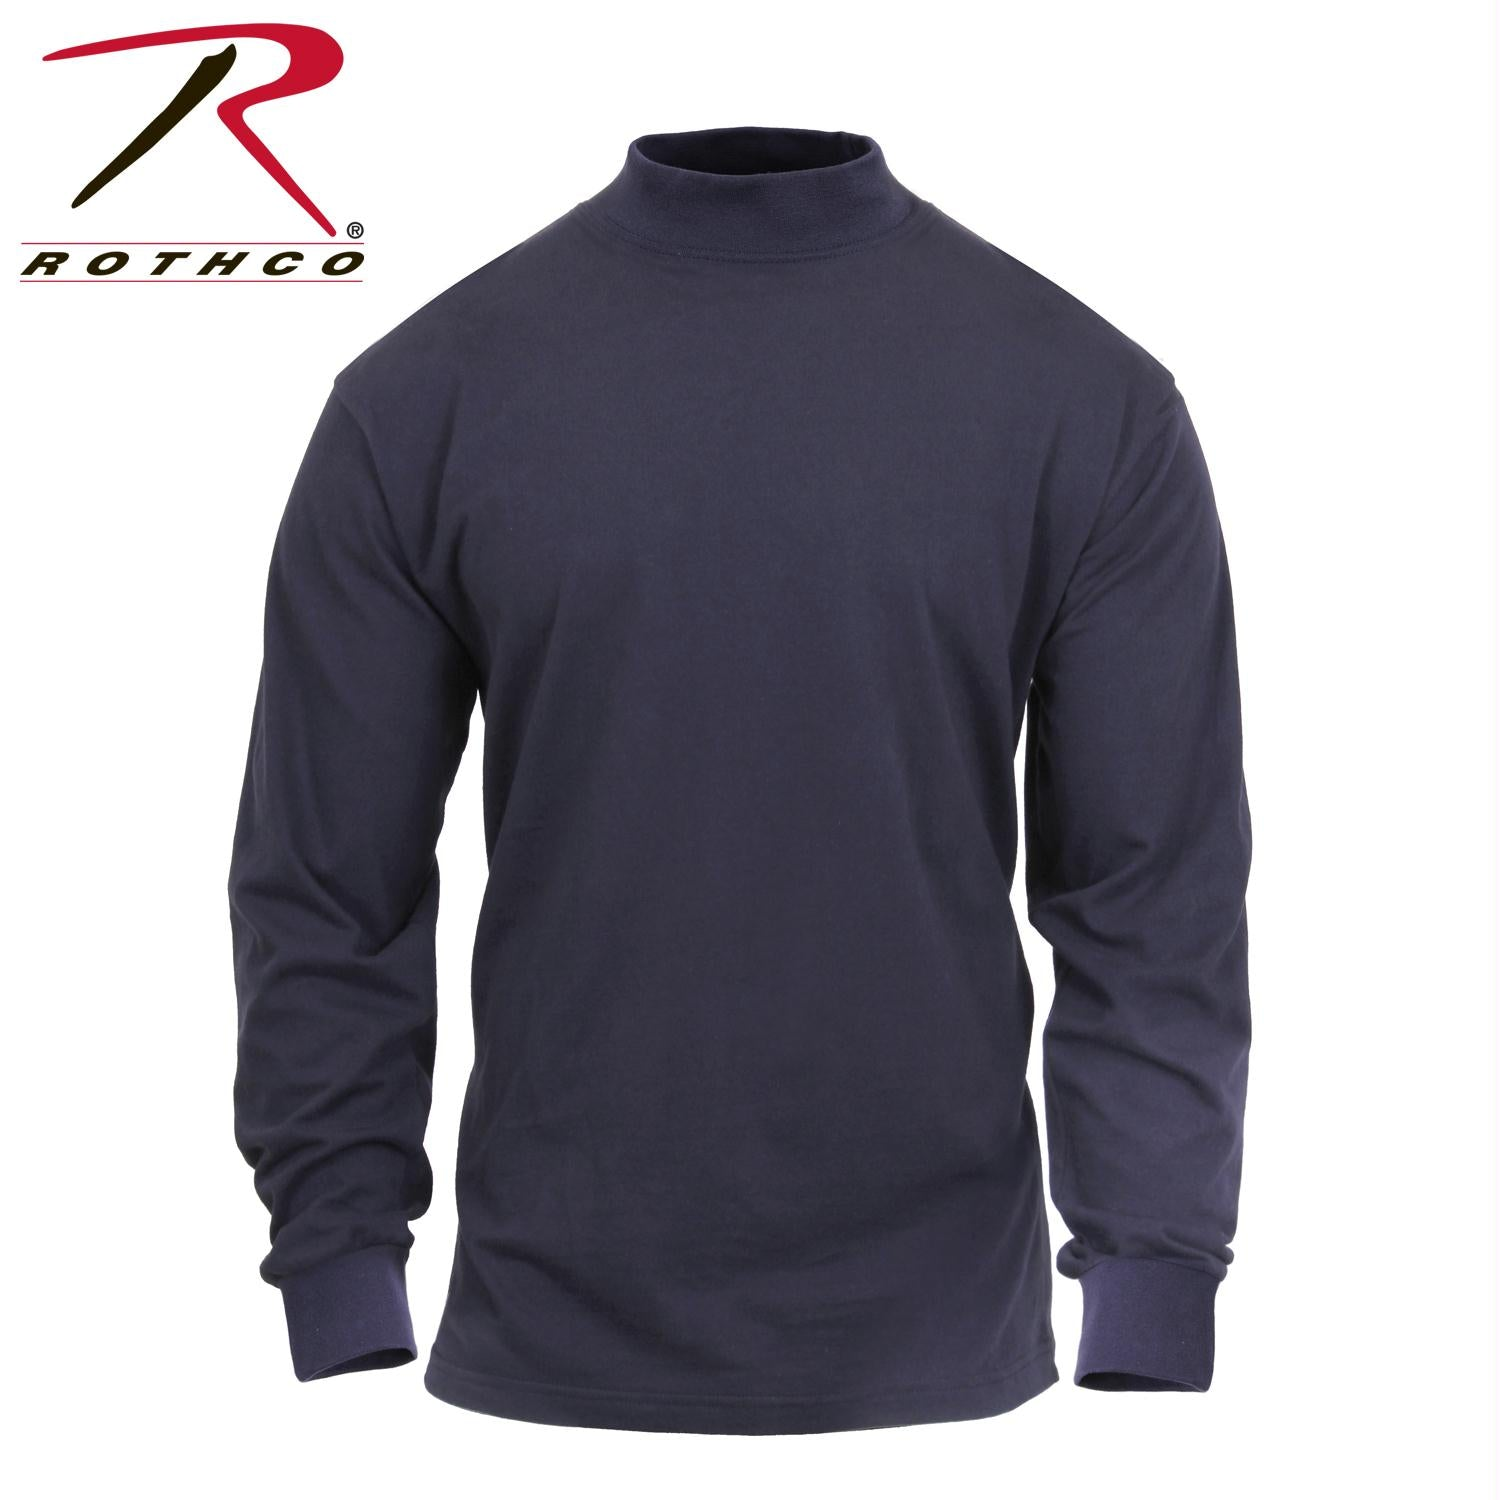 Rothco Mock Turtleneck - Midnight Navy Blue / S